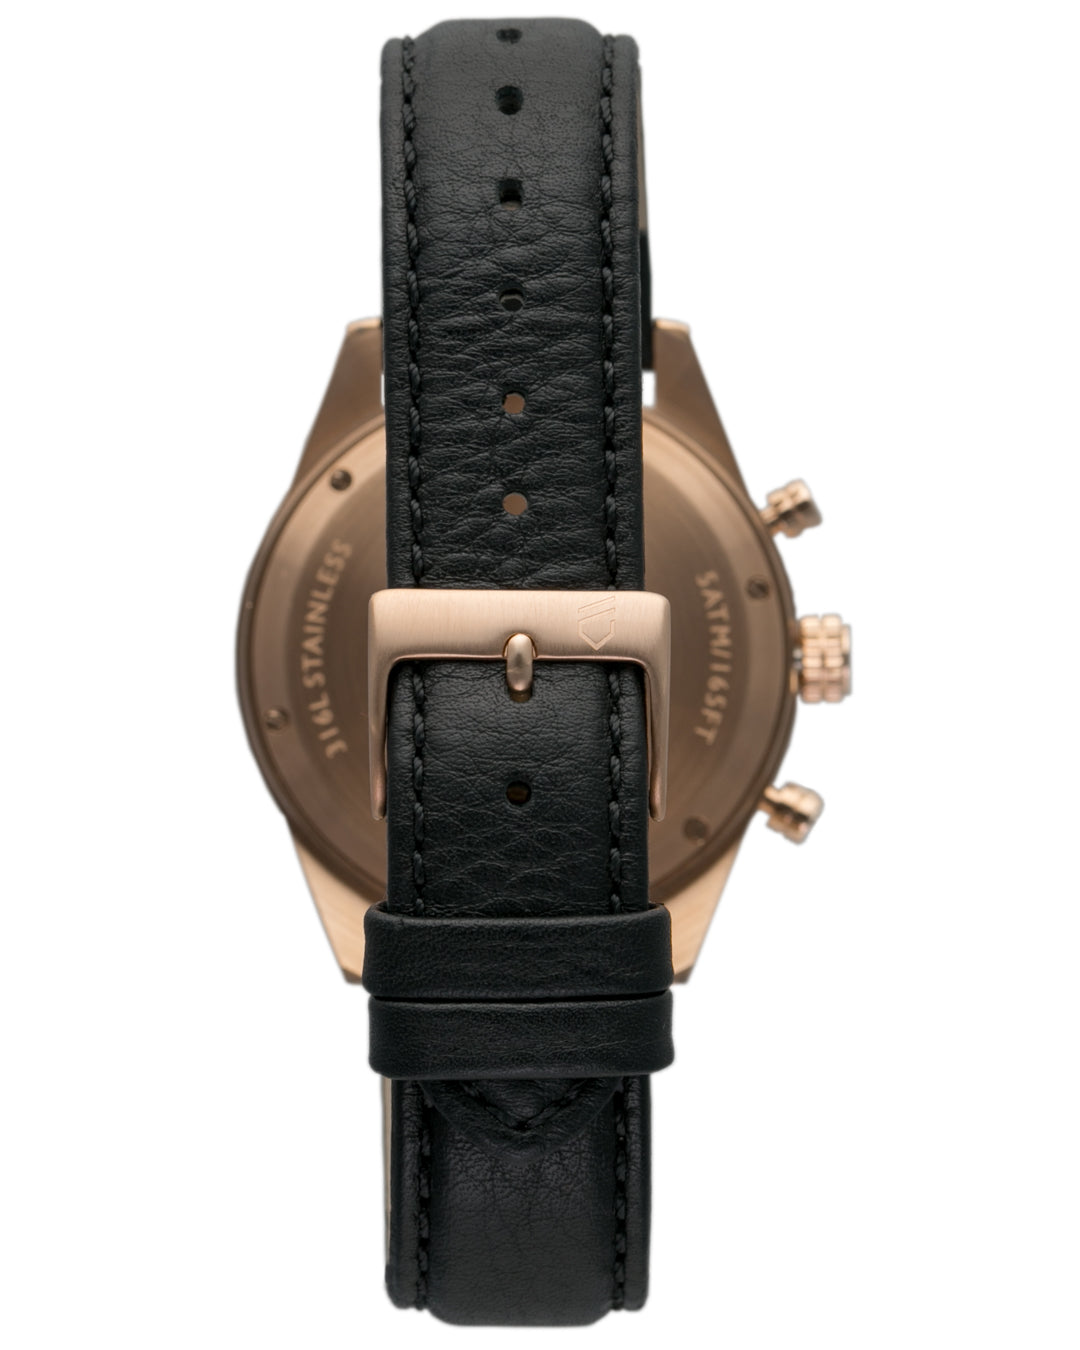 Rose gold and black chronograph watch with three hands and interchangeable leather straps